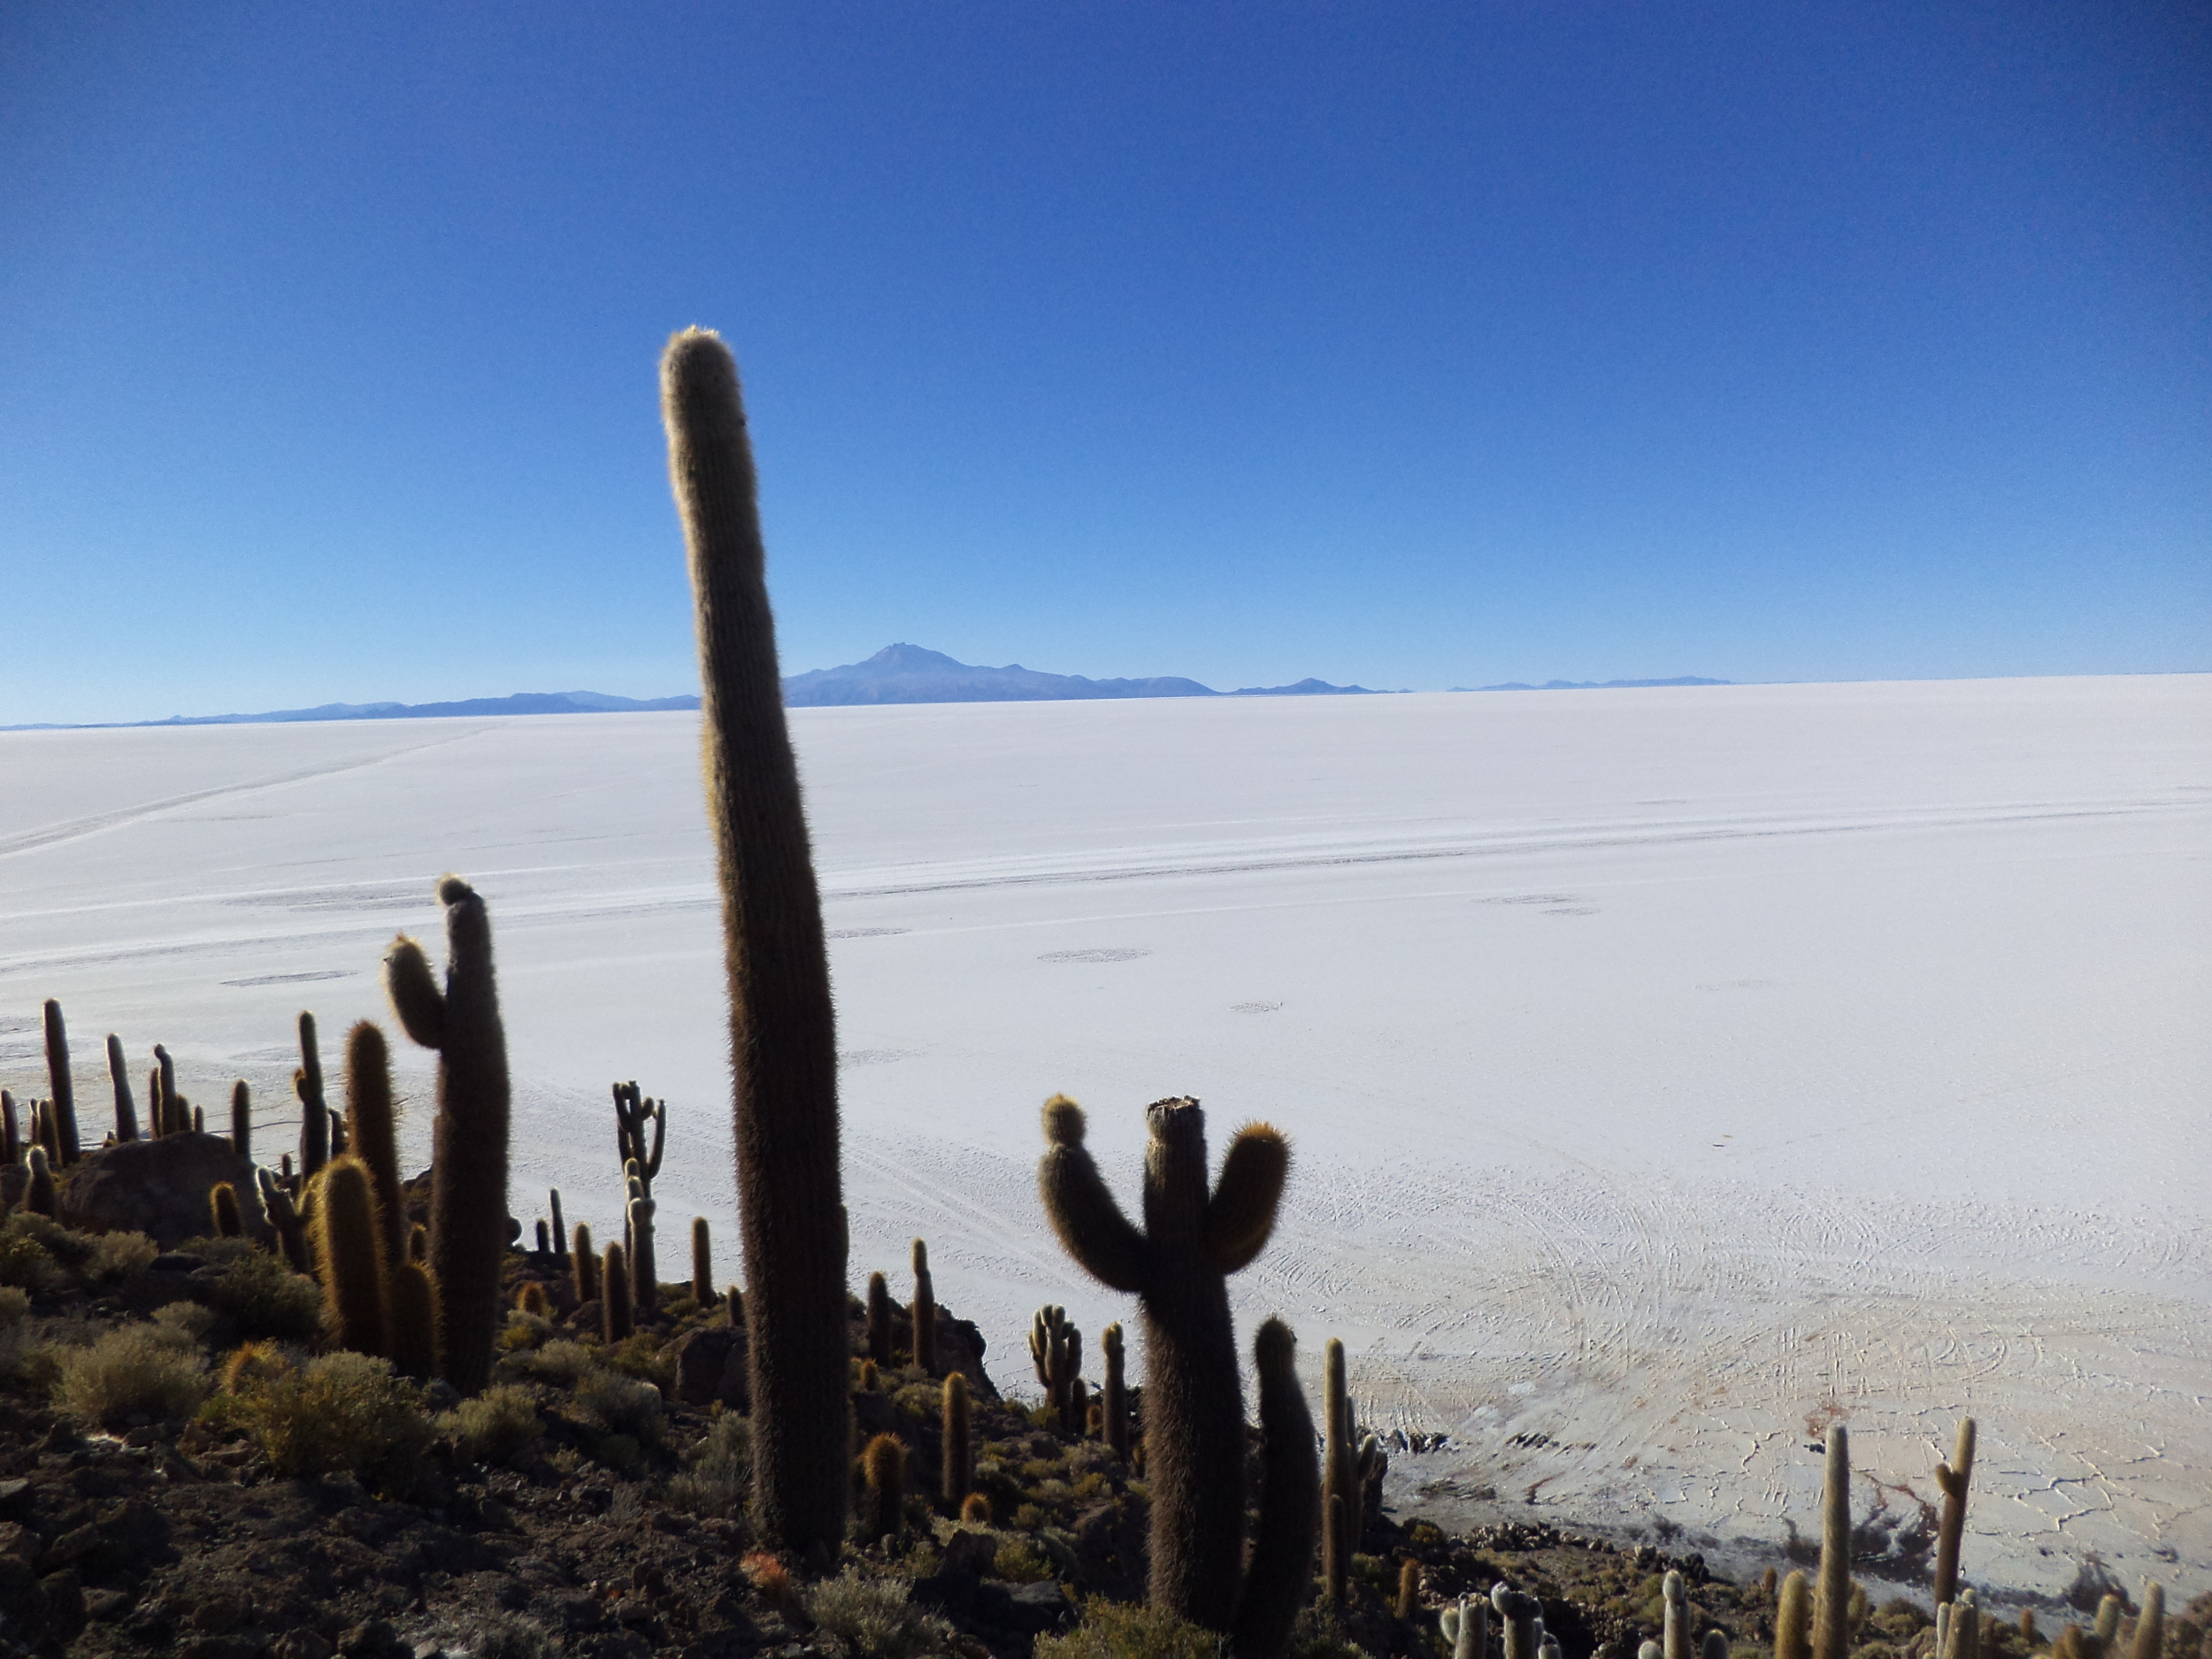 Salar de Uyuni - Bolivia  The world's largest salt flat, 4,100 square miles and elevated at nearly 12,000 feet in Bolivia's south-west corner. This is an awe-inspiring surreal landscape a place not to be missed. The sunset so vivid, and the seemingly countless stars in the sky at night and the clarity the greatest I have ever witnessed.